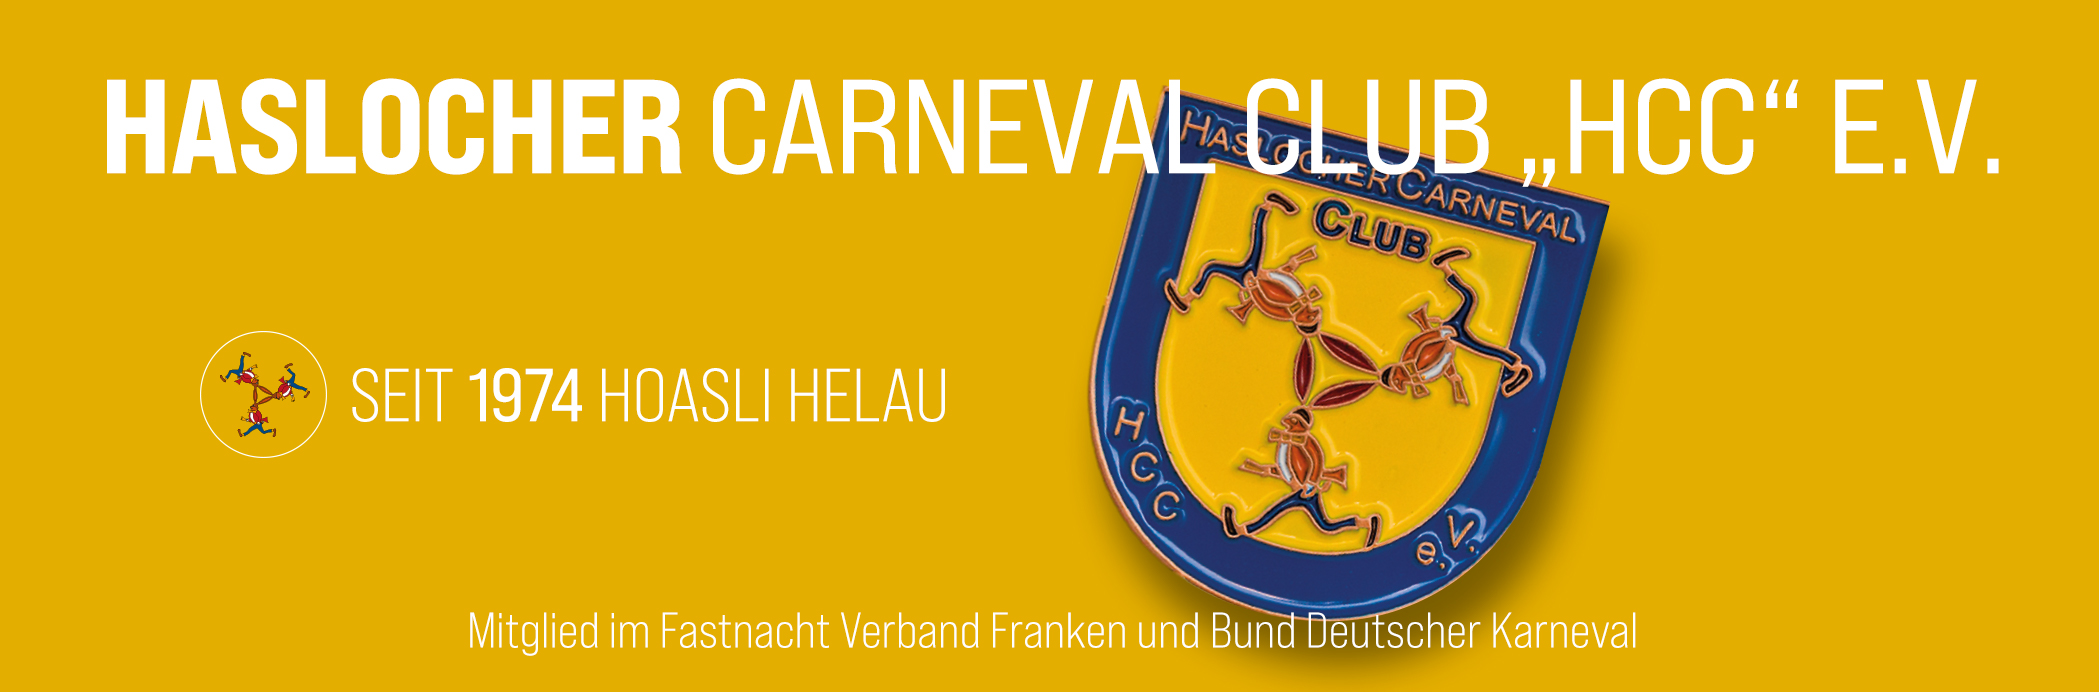 Haslocher Carneval Club e.V.